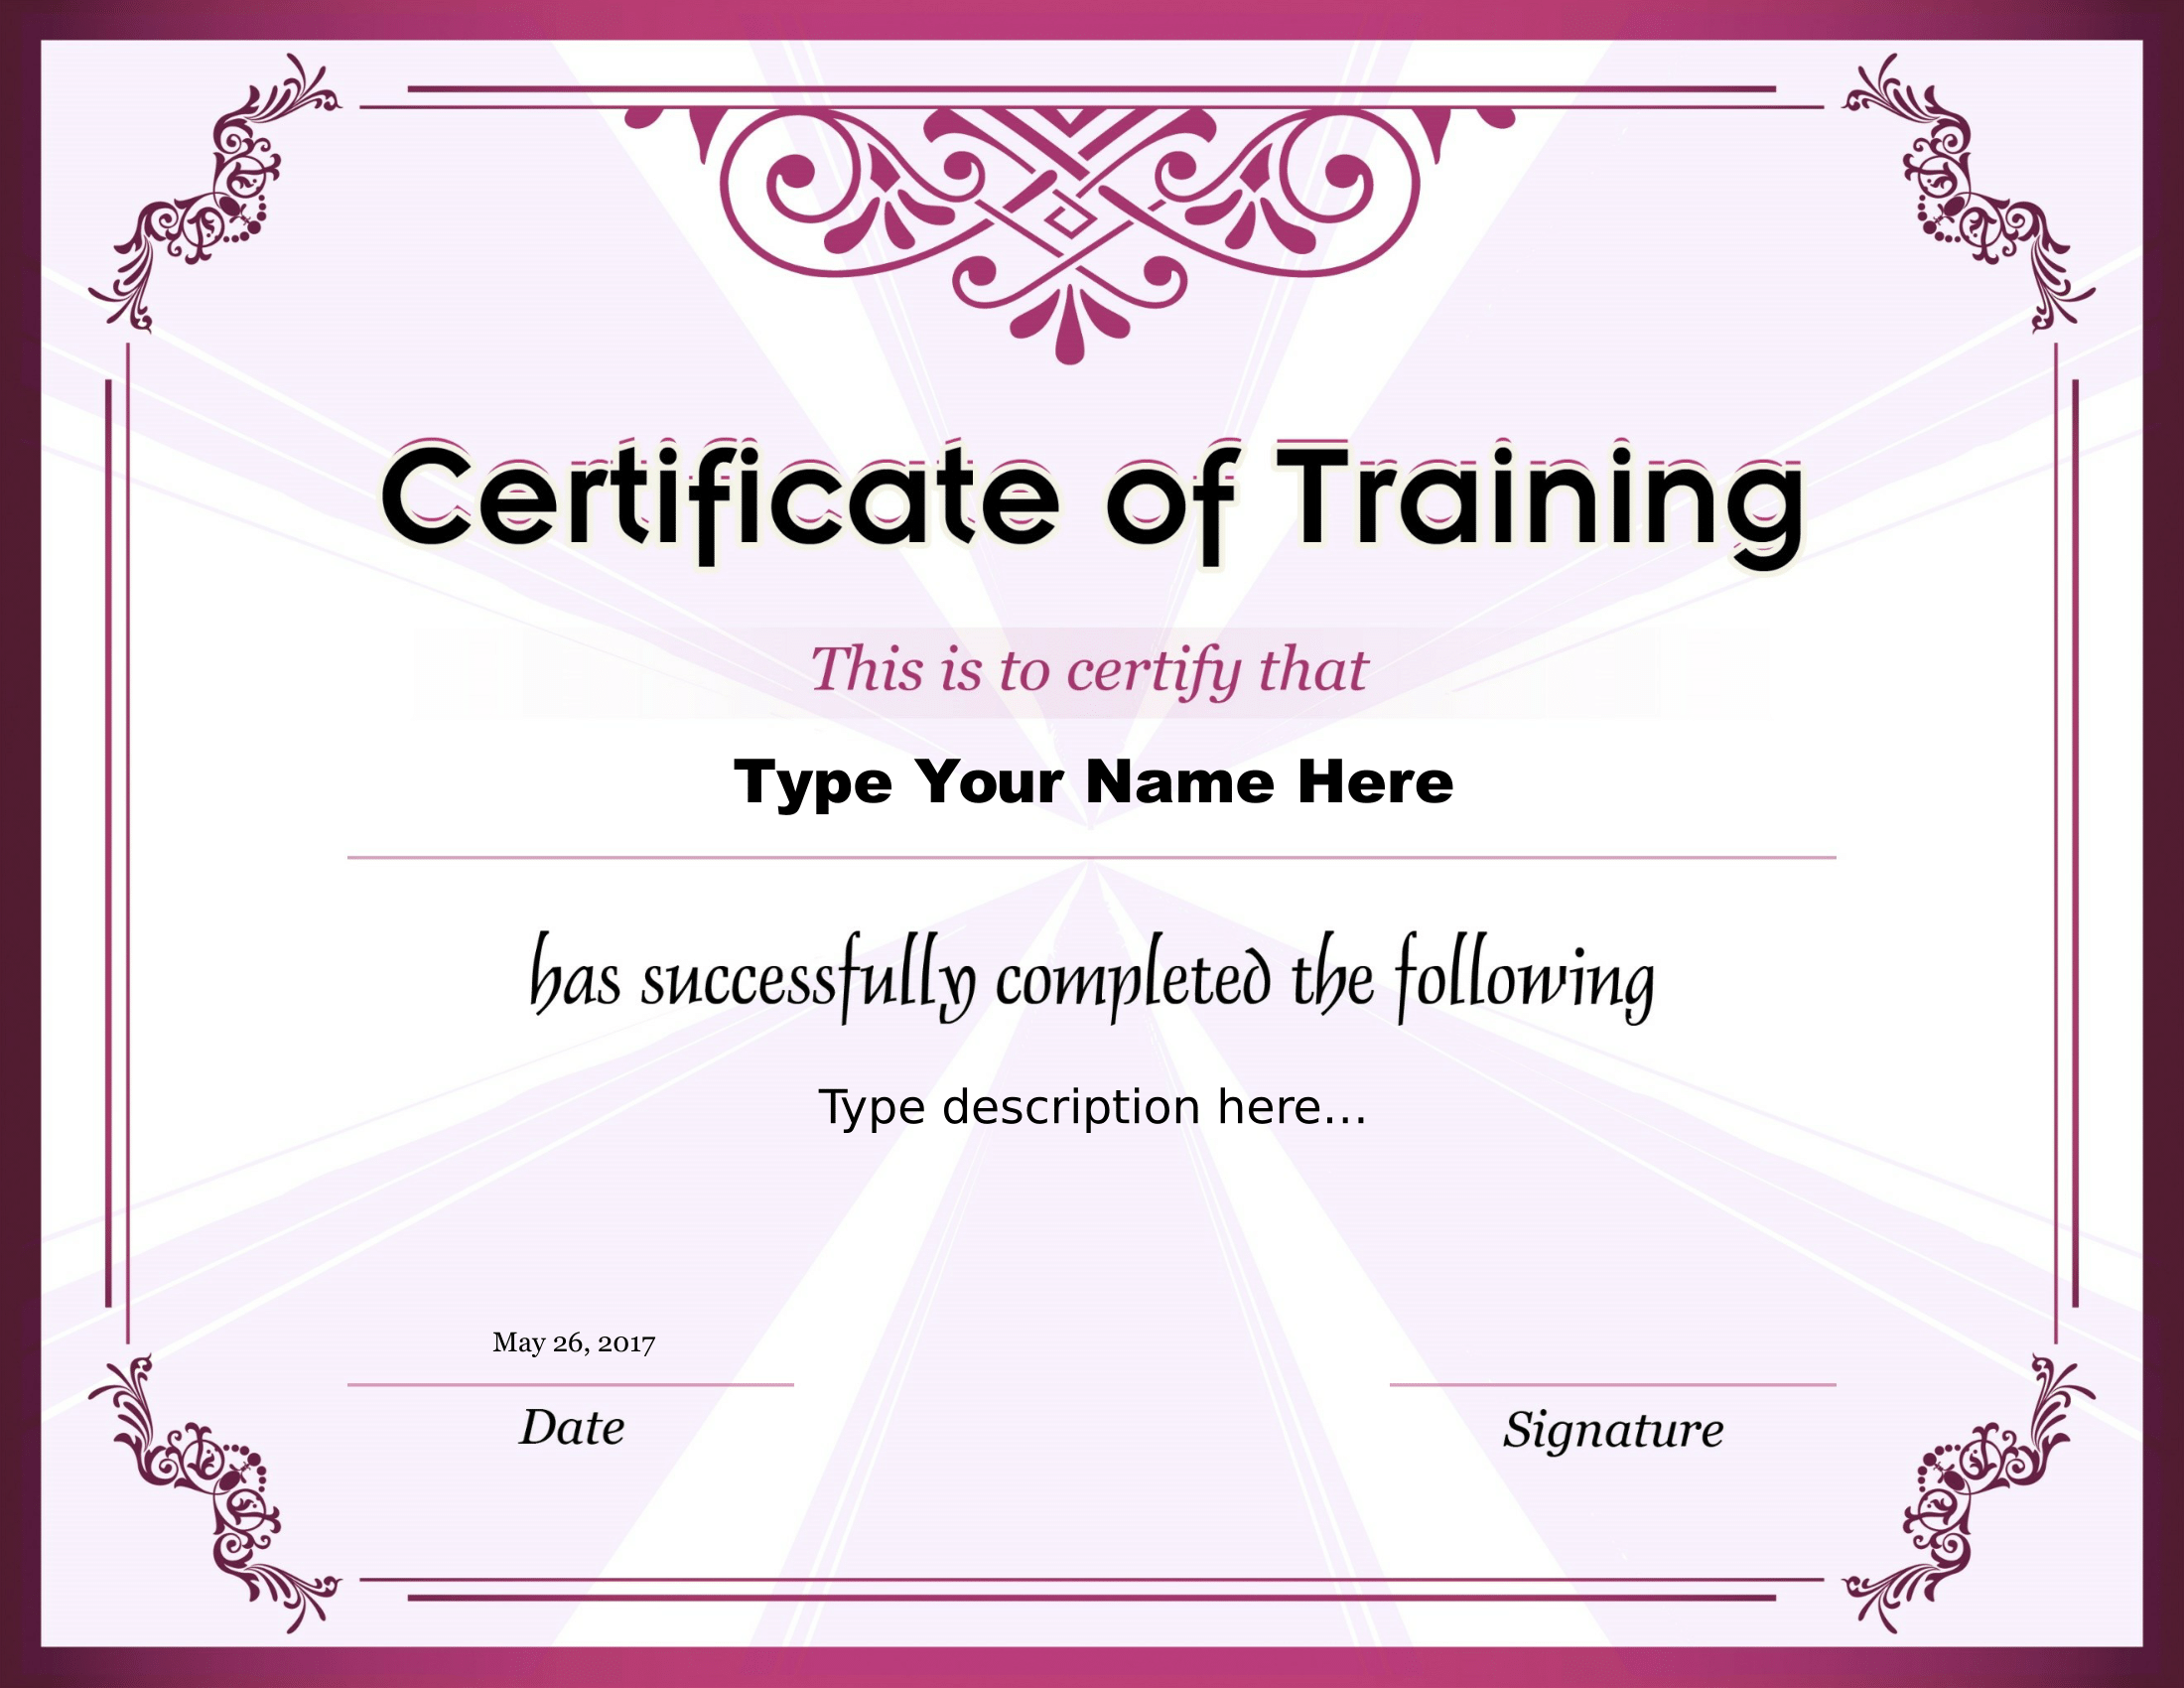 Certificate of Training Sample